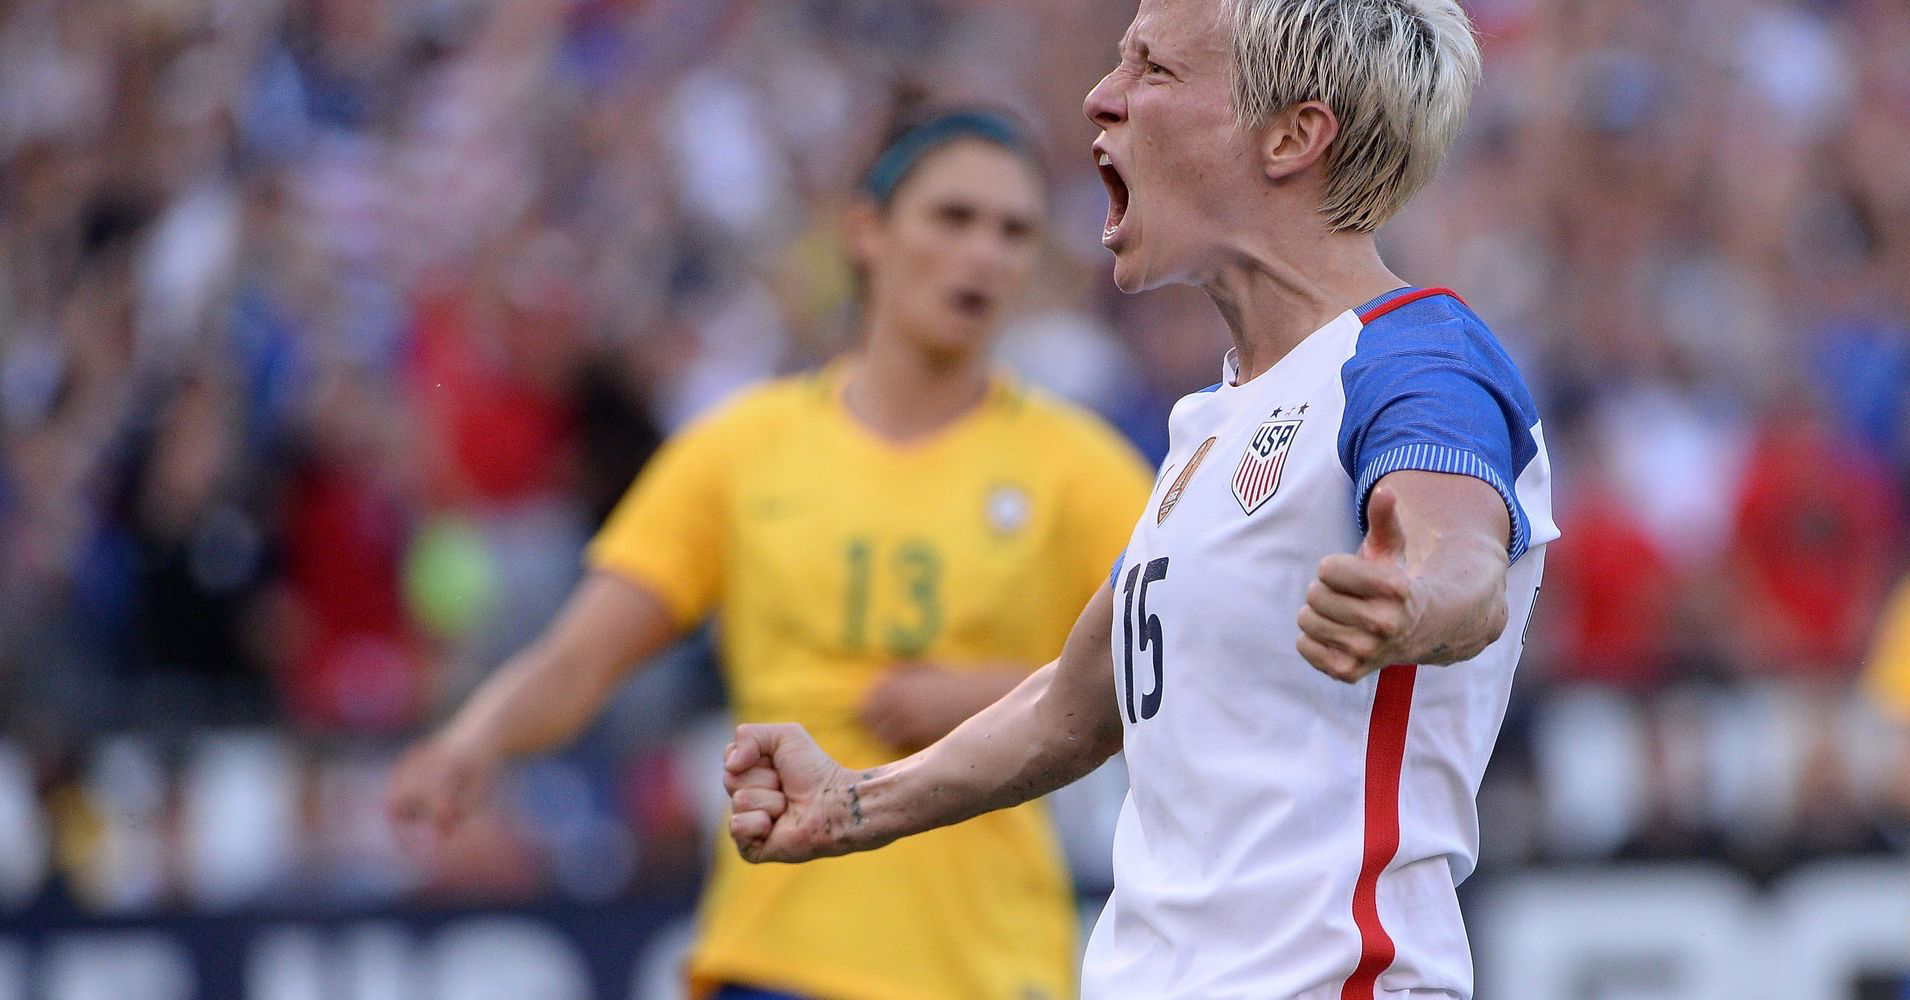 Megan Rapinoe, FIFA, woman warrior, warrior, shield maiden, viking warrior, viking warrior woman, dixie chicks, not ready to make nice, feminist, female athletes, world cup soccer, not ready to make nice, us soccer,